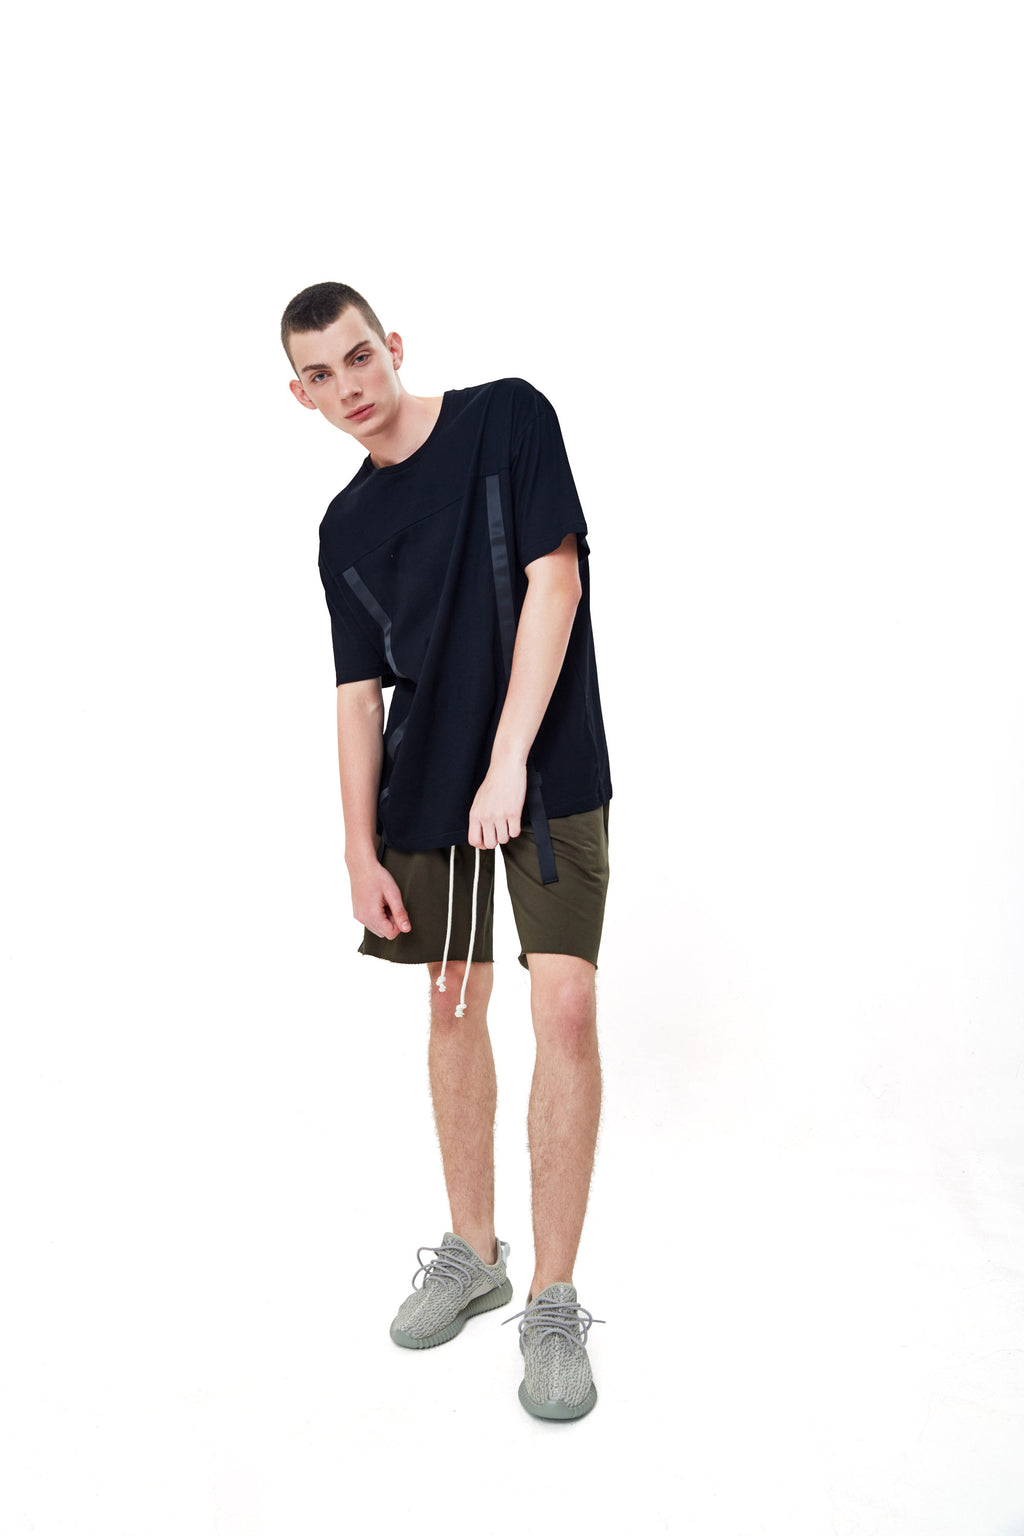 TAPE BLACK OVERSIZED T-SHIRT